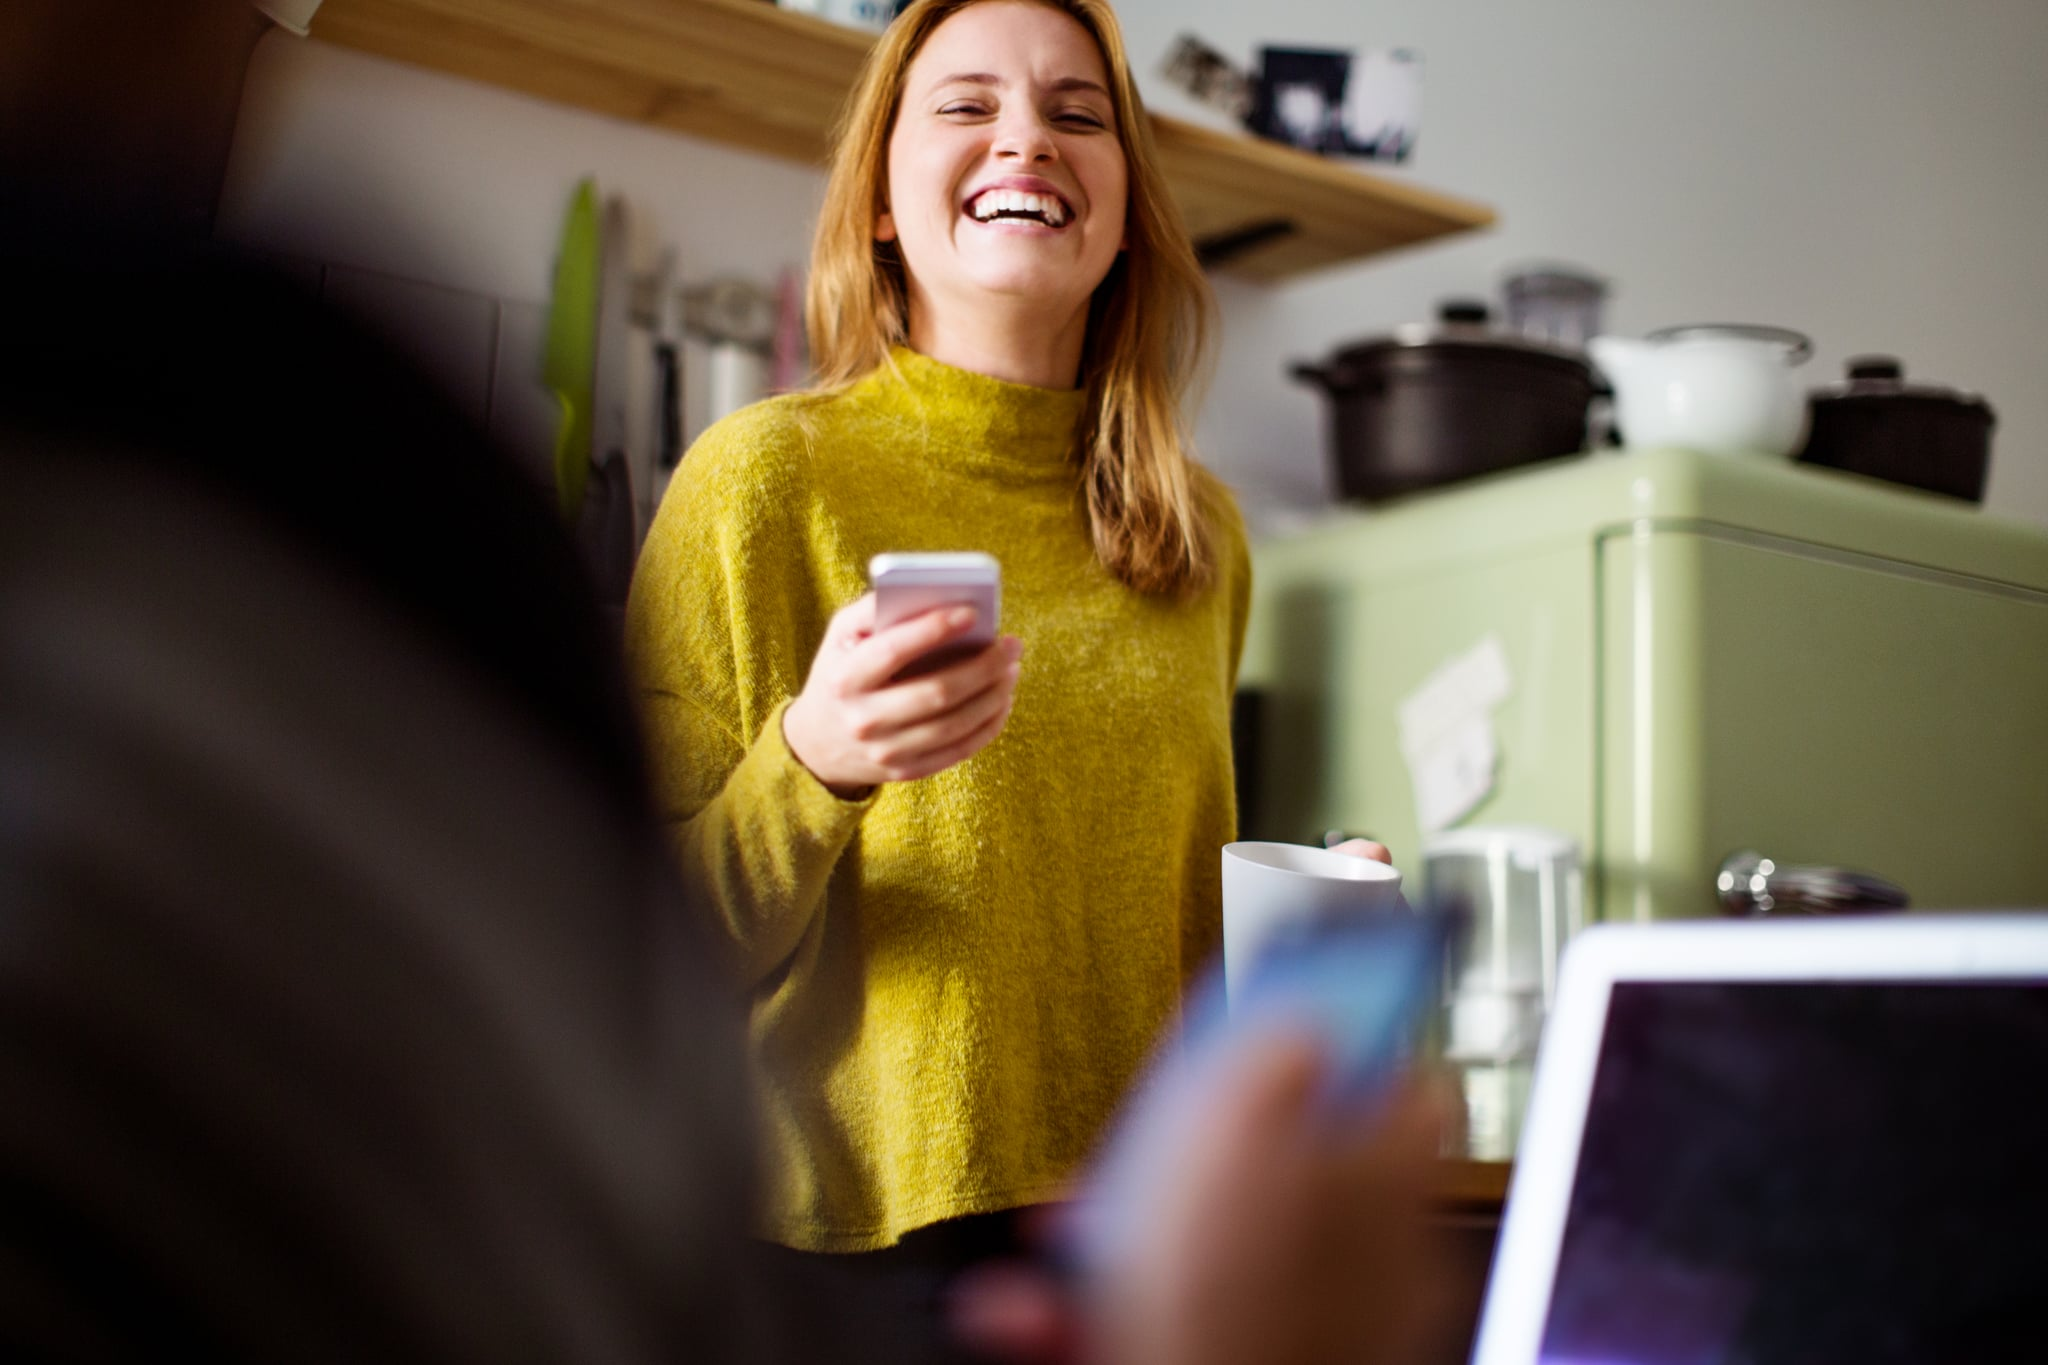 Young woman talking to man sitting in front and smiling. Cheerful female with mobile phone in kitchen.